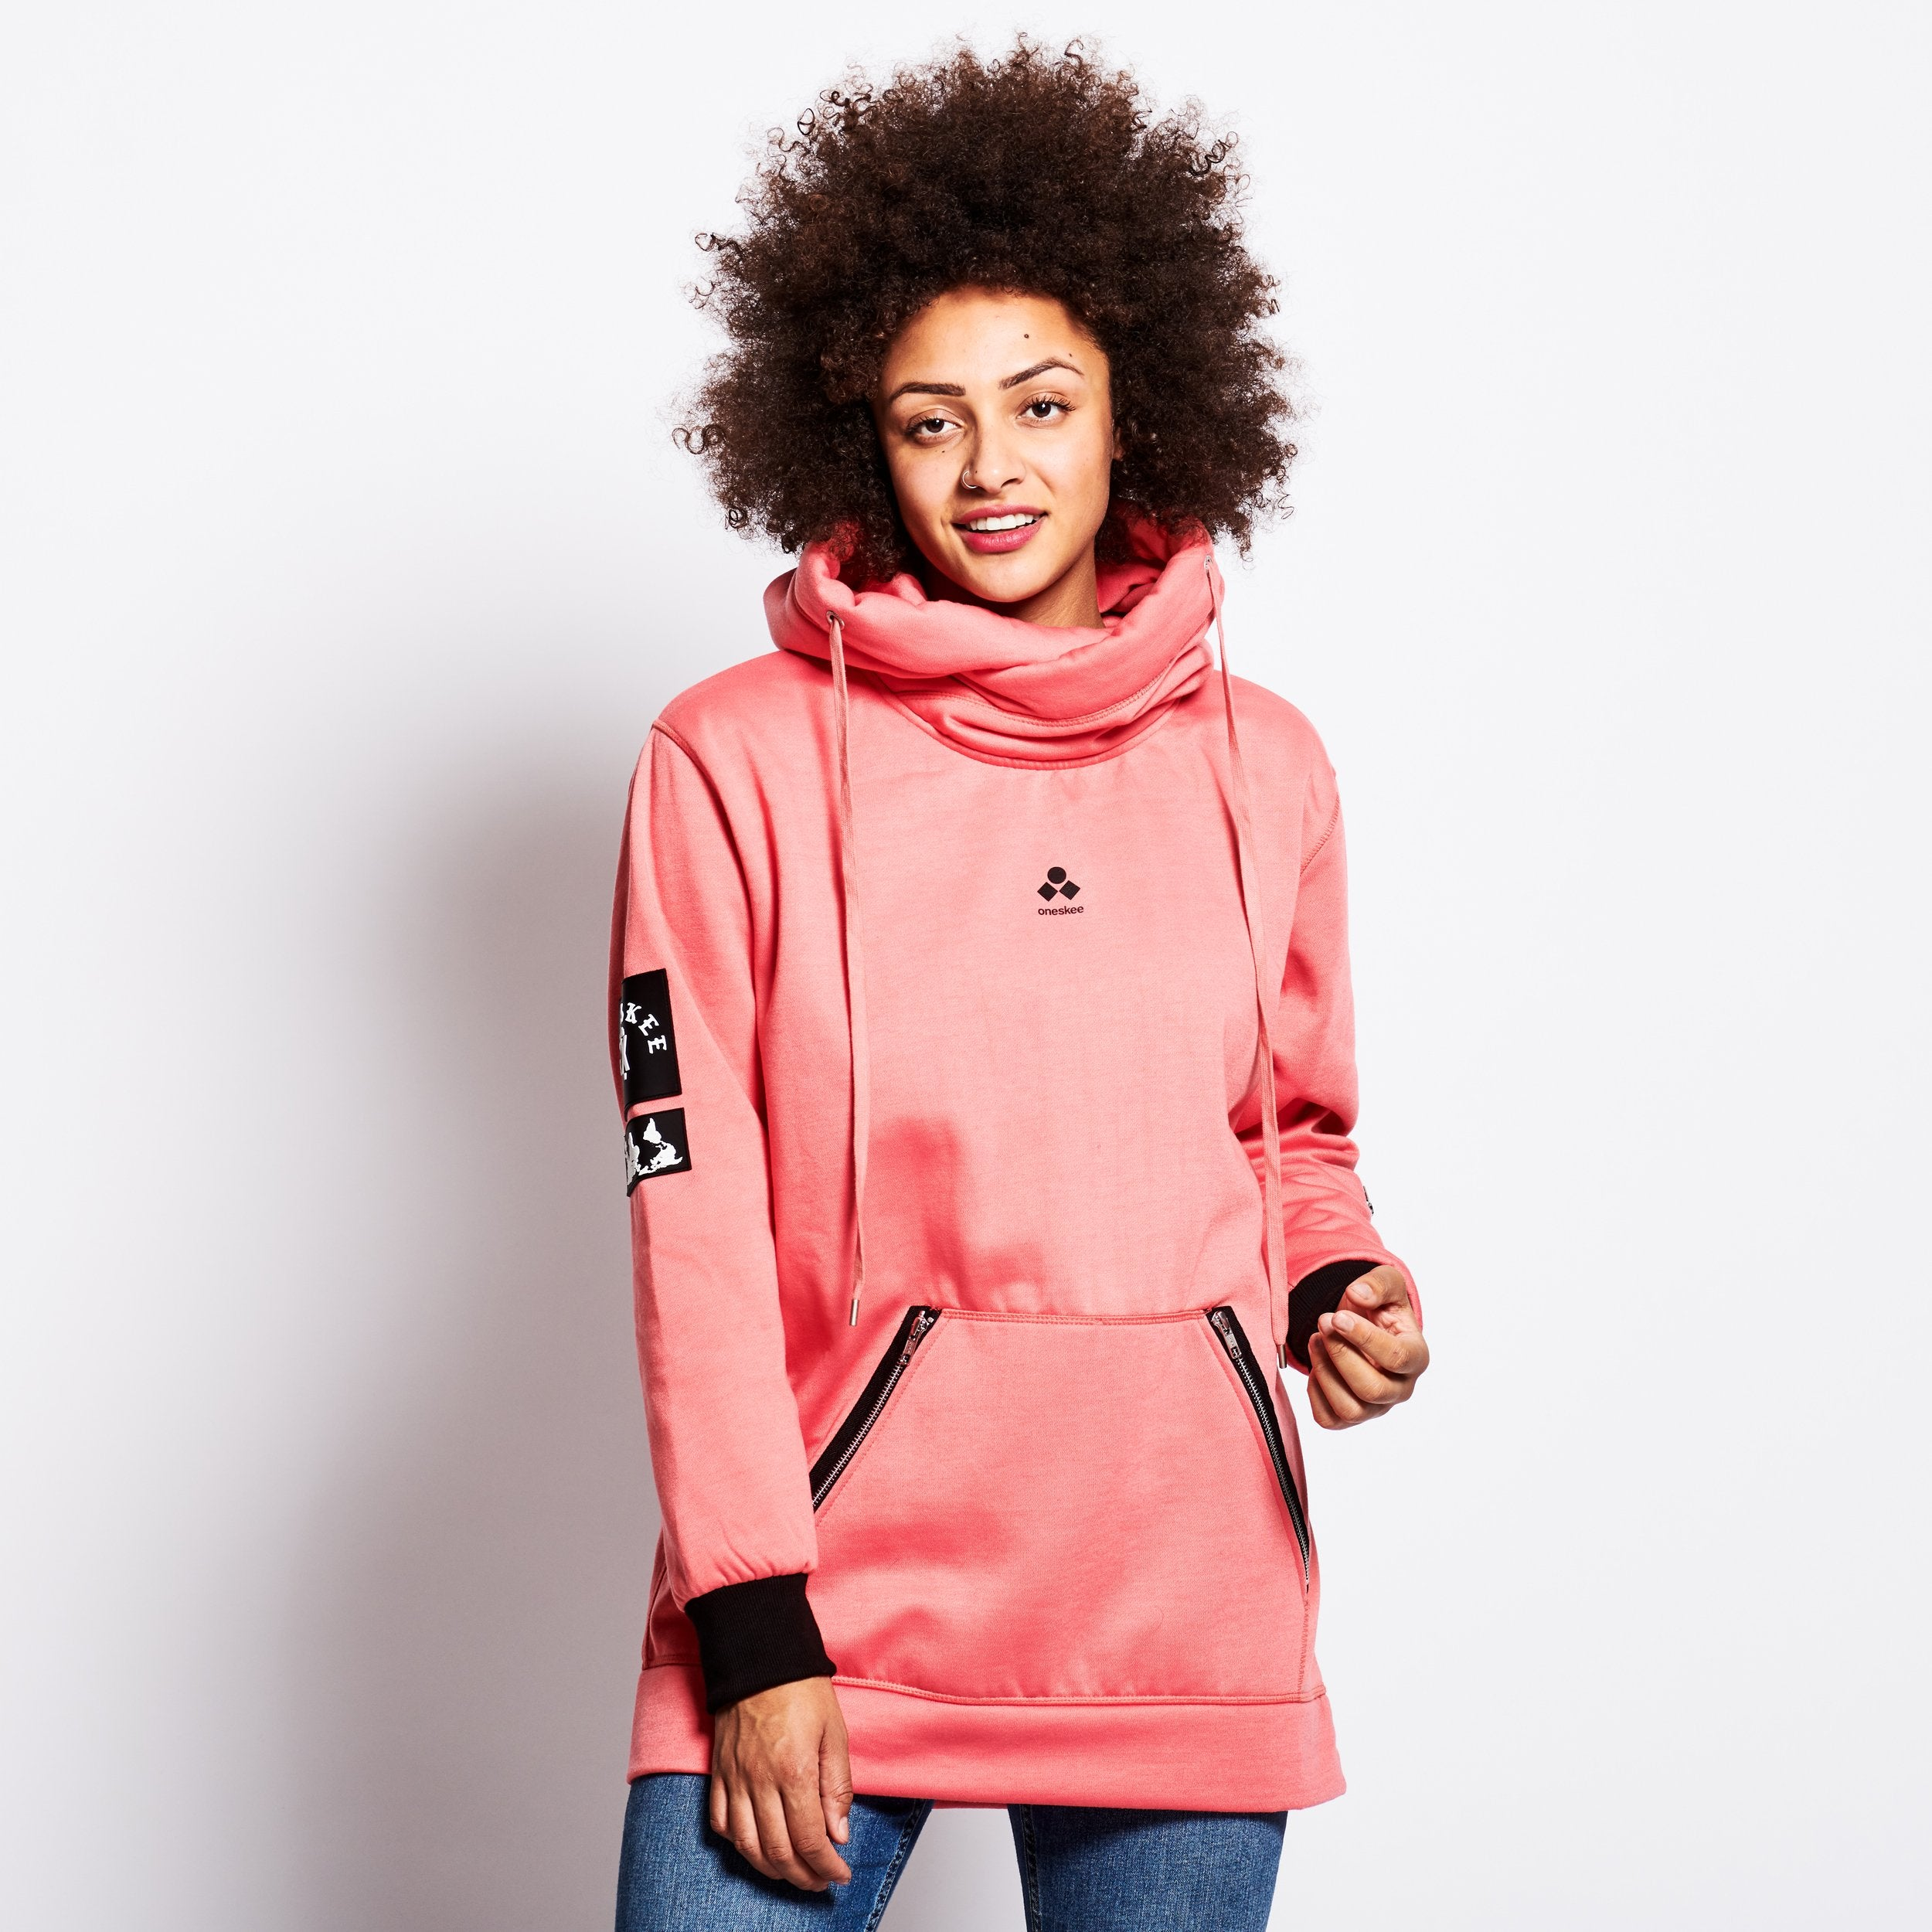 Women's Technical X-Neck Hoodie  - Pink image 2